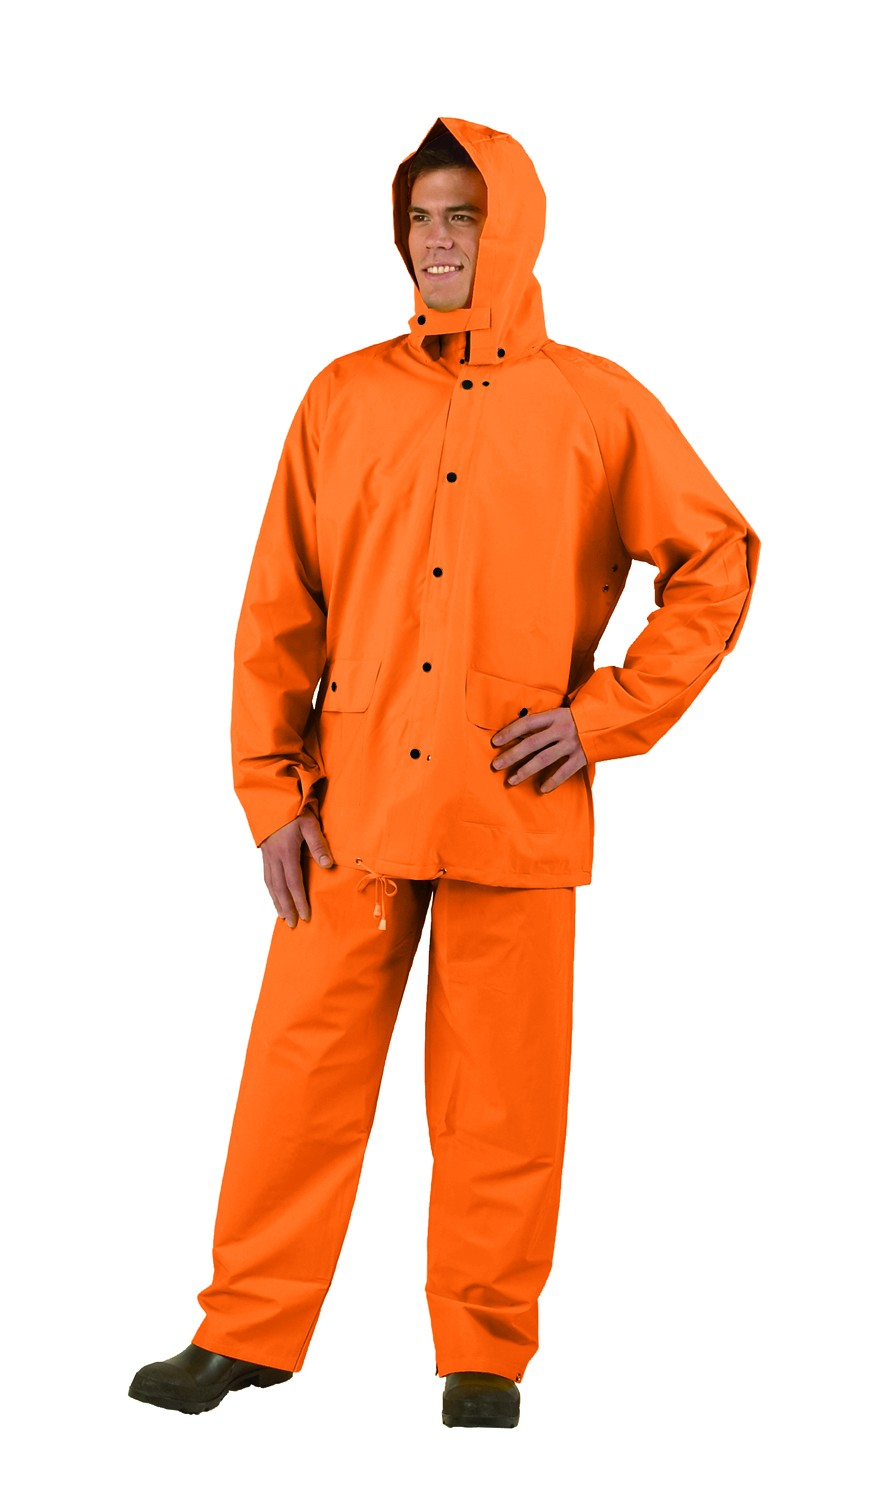 Orange Workforce Three Piece PVC Rainsuit - Sizes M-3XL